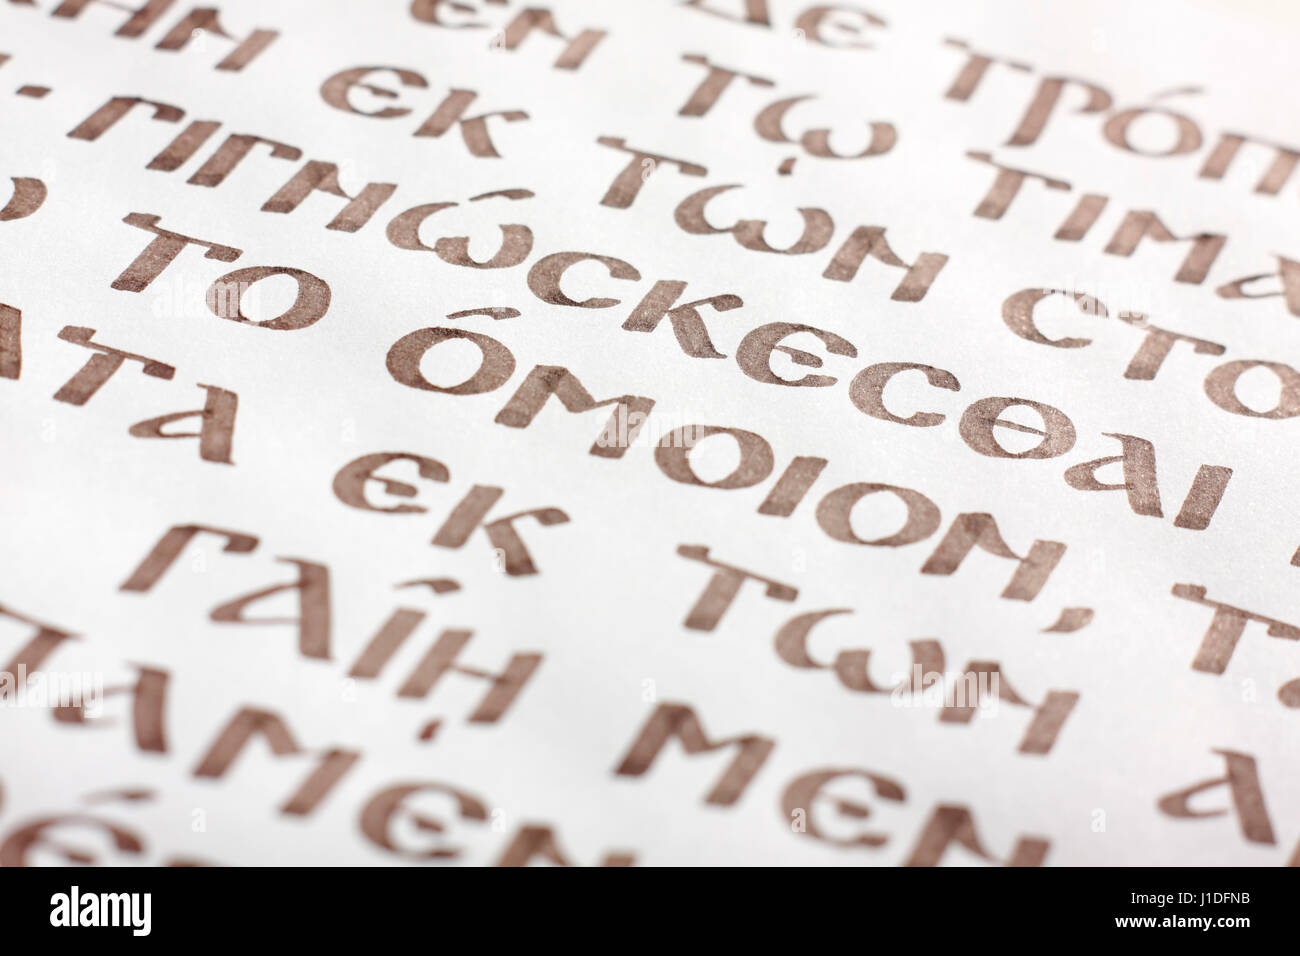 Close up view of ancient writing. Uncial greek script. - Stock Image